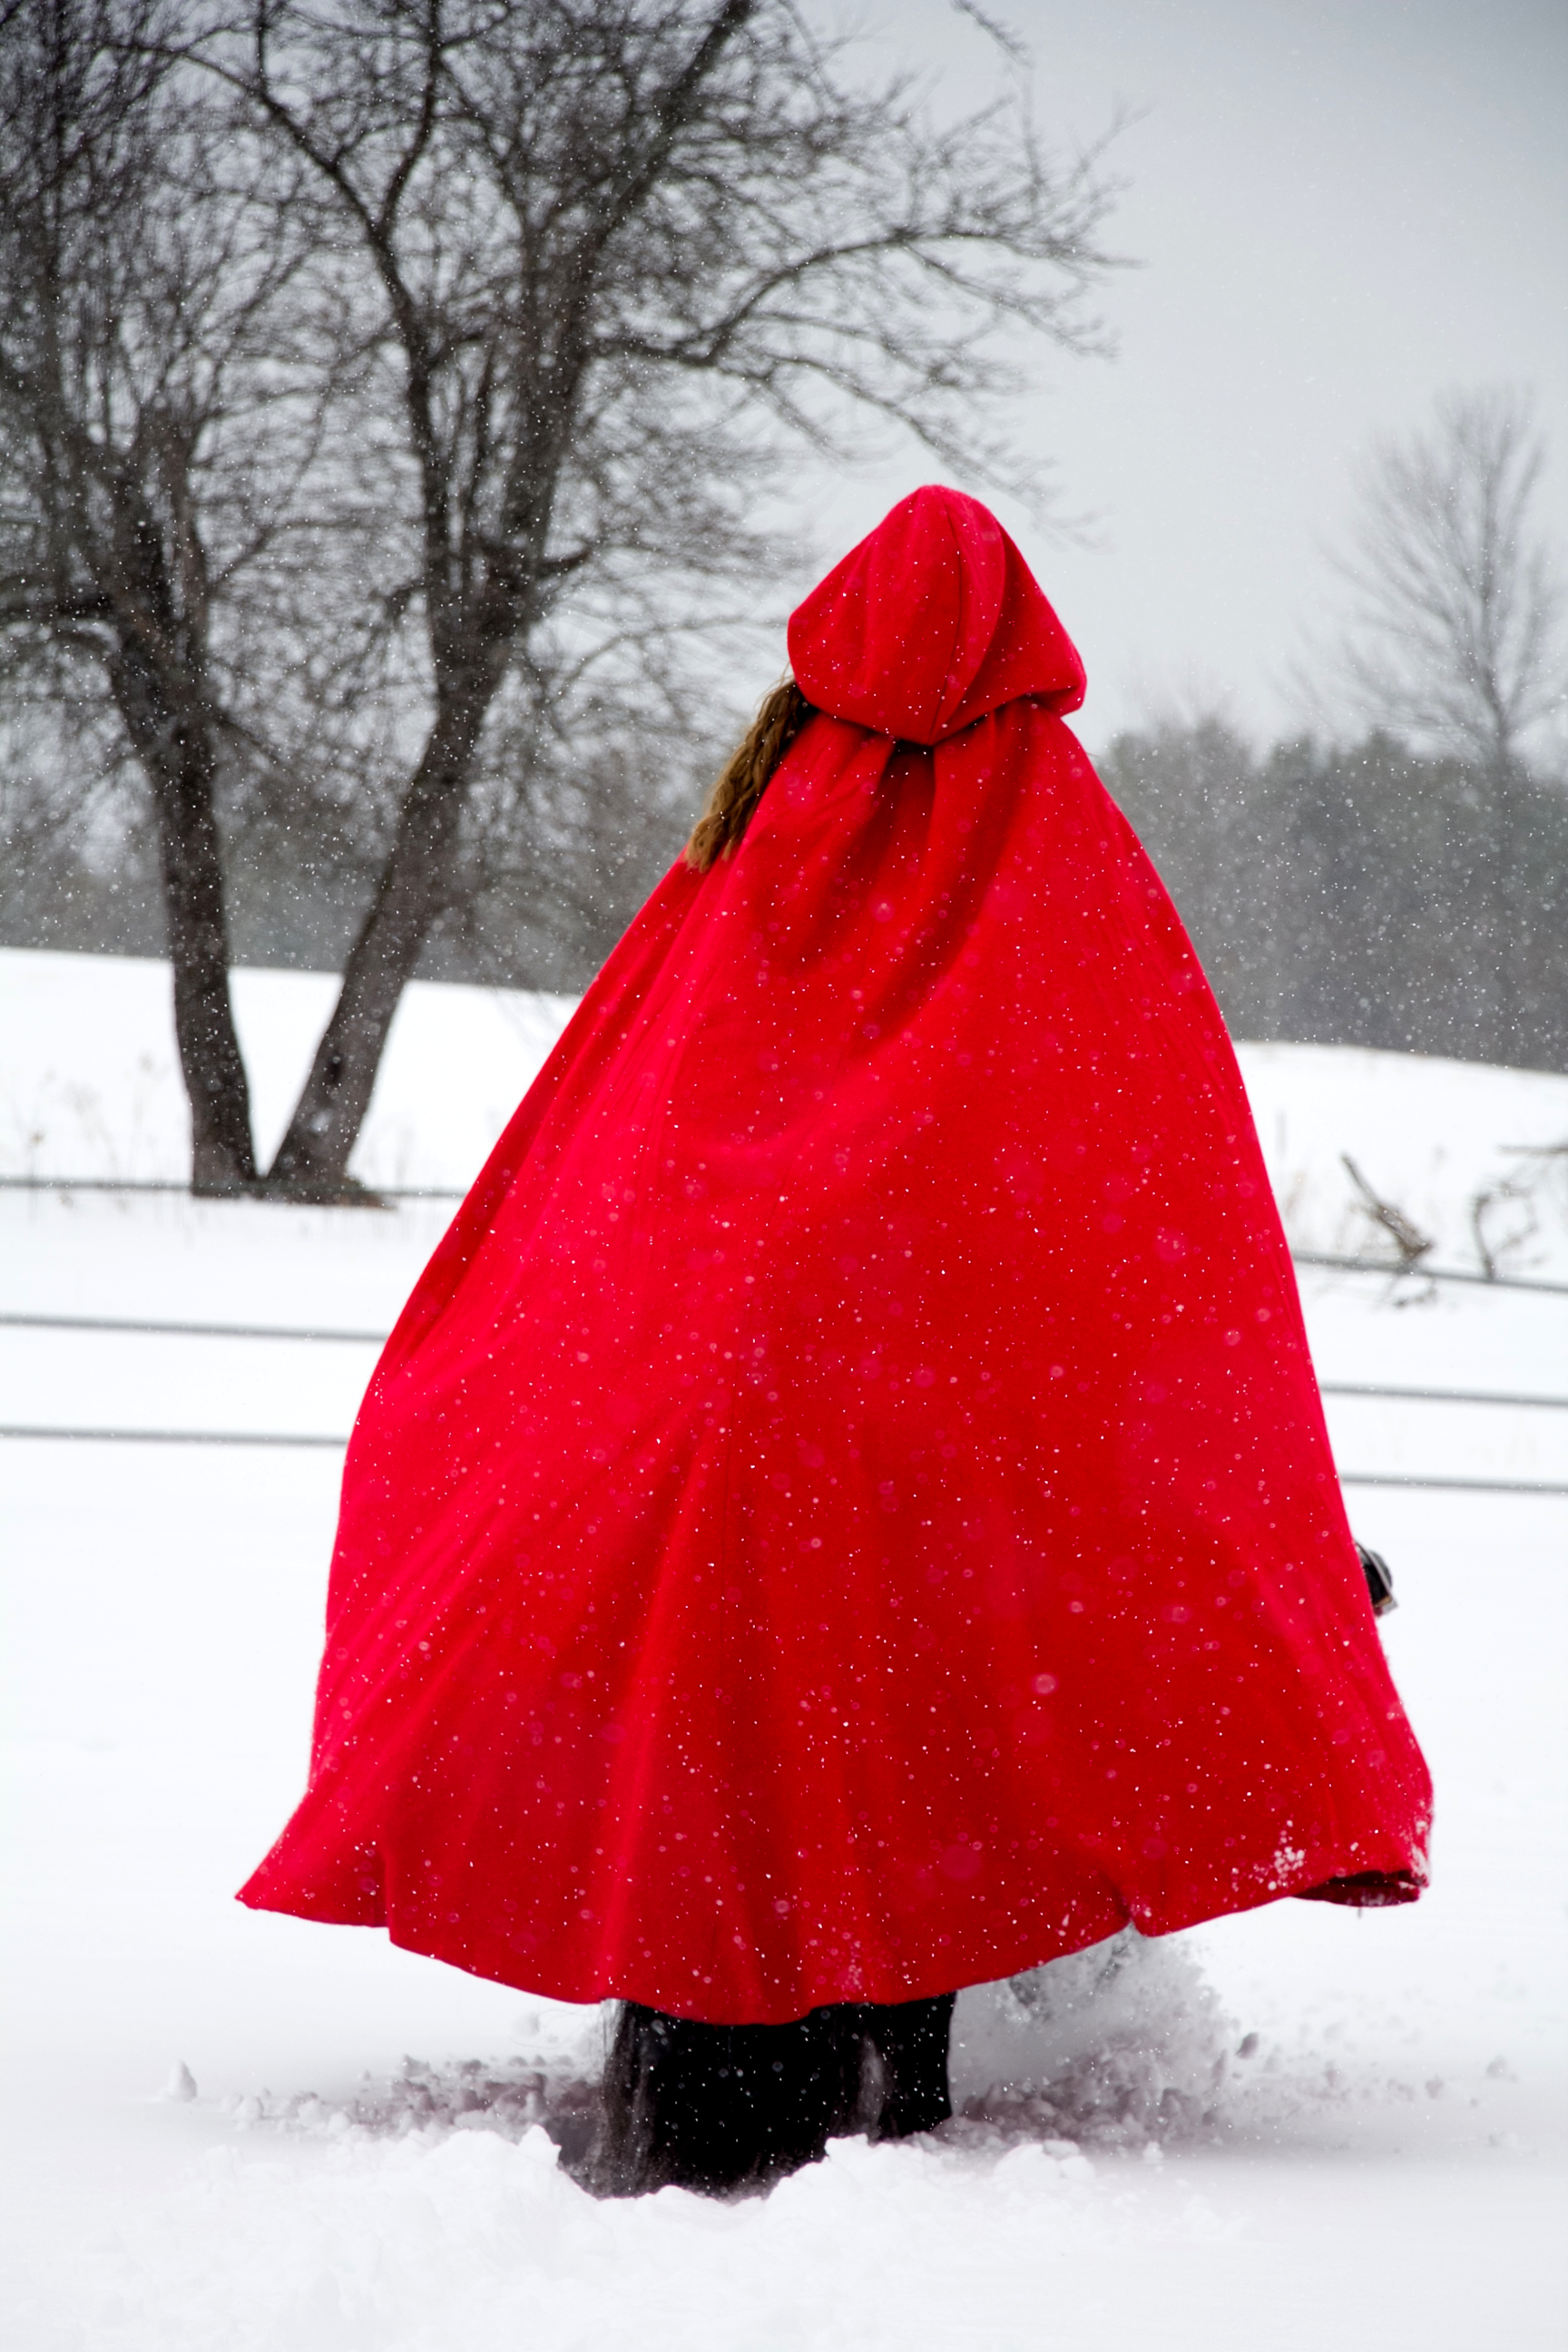 redcapefrombehind.jpg